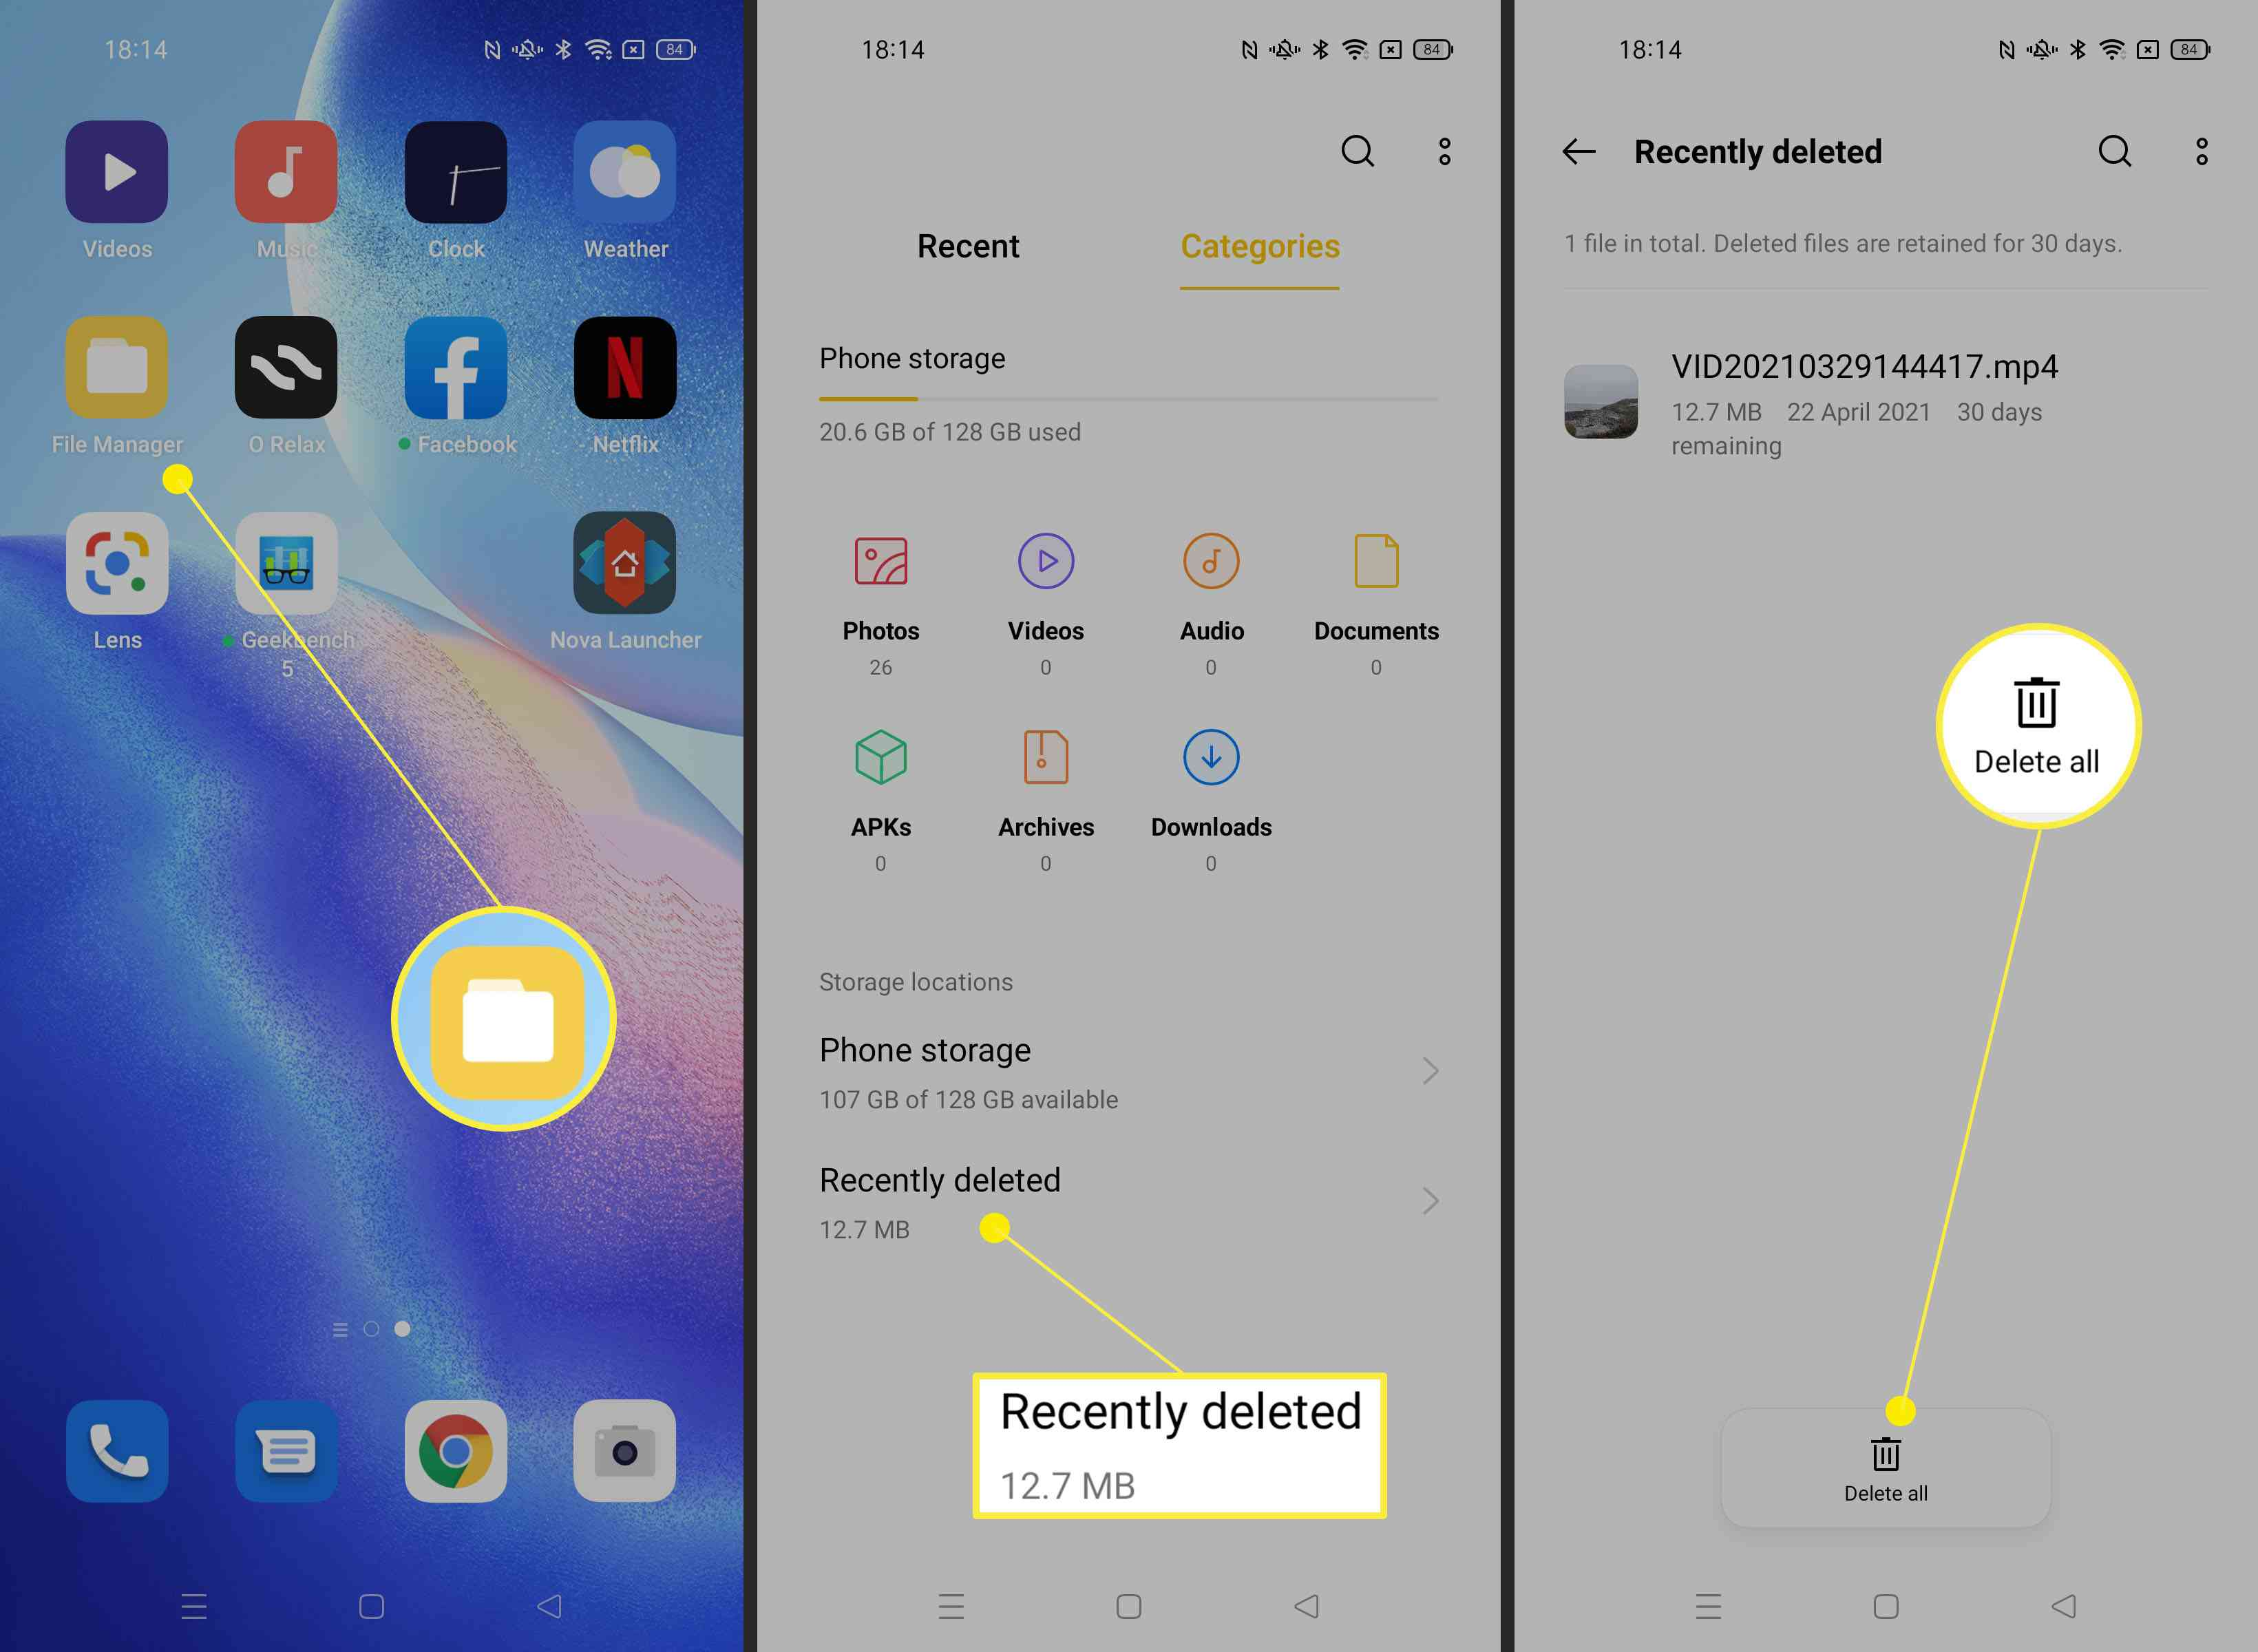 Steps required to delete all photos or files within File Manager on Android